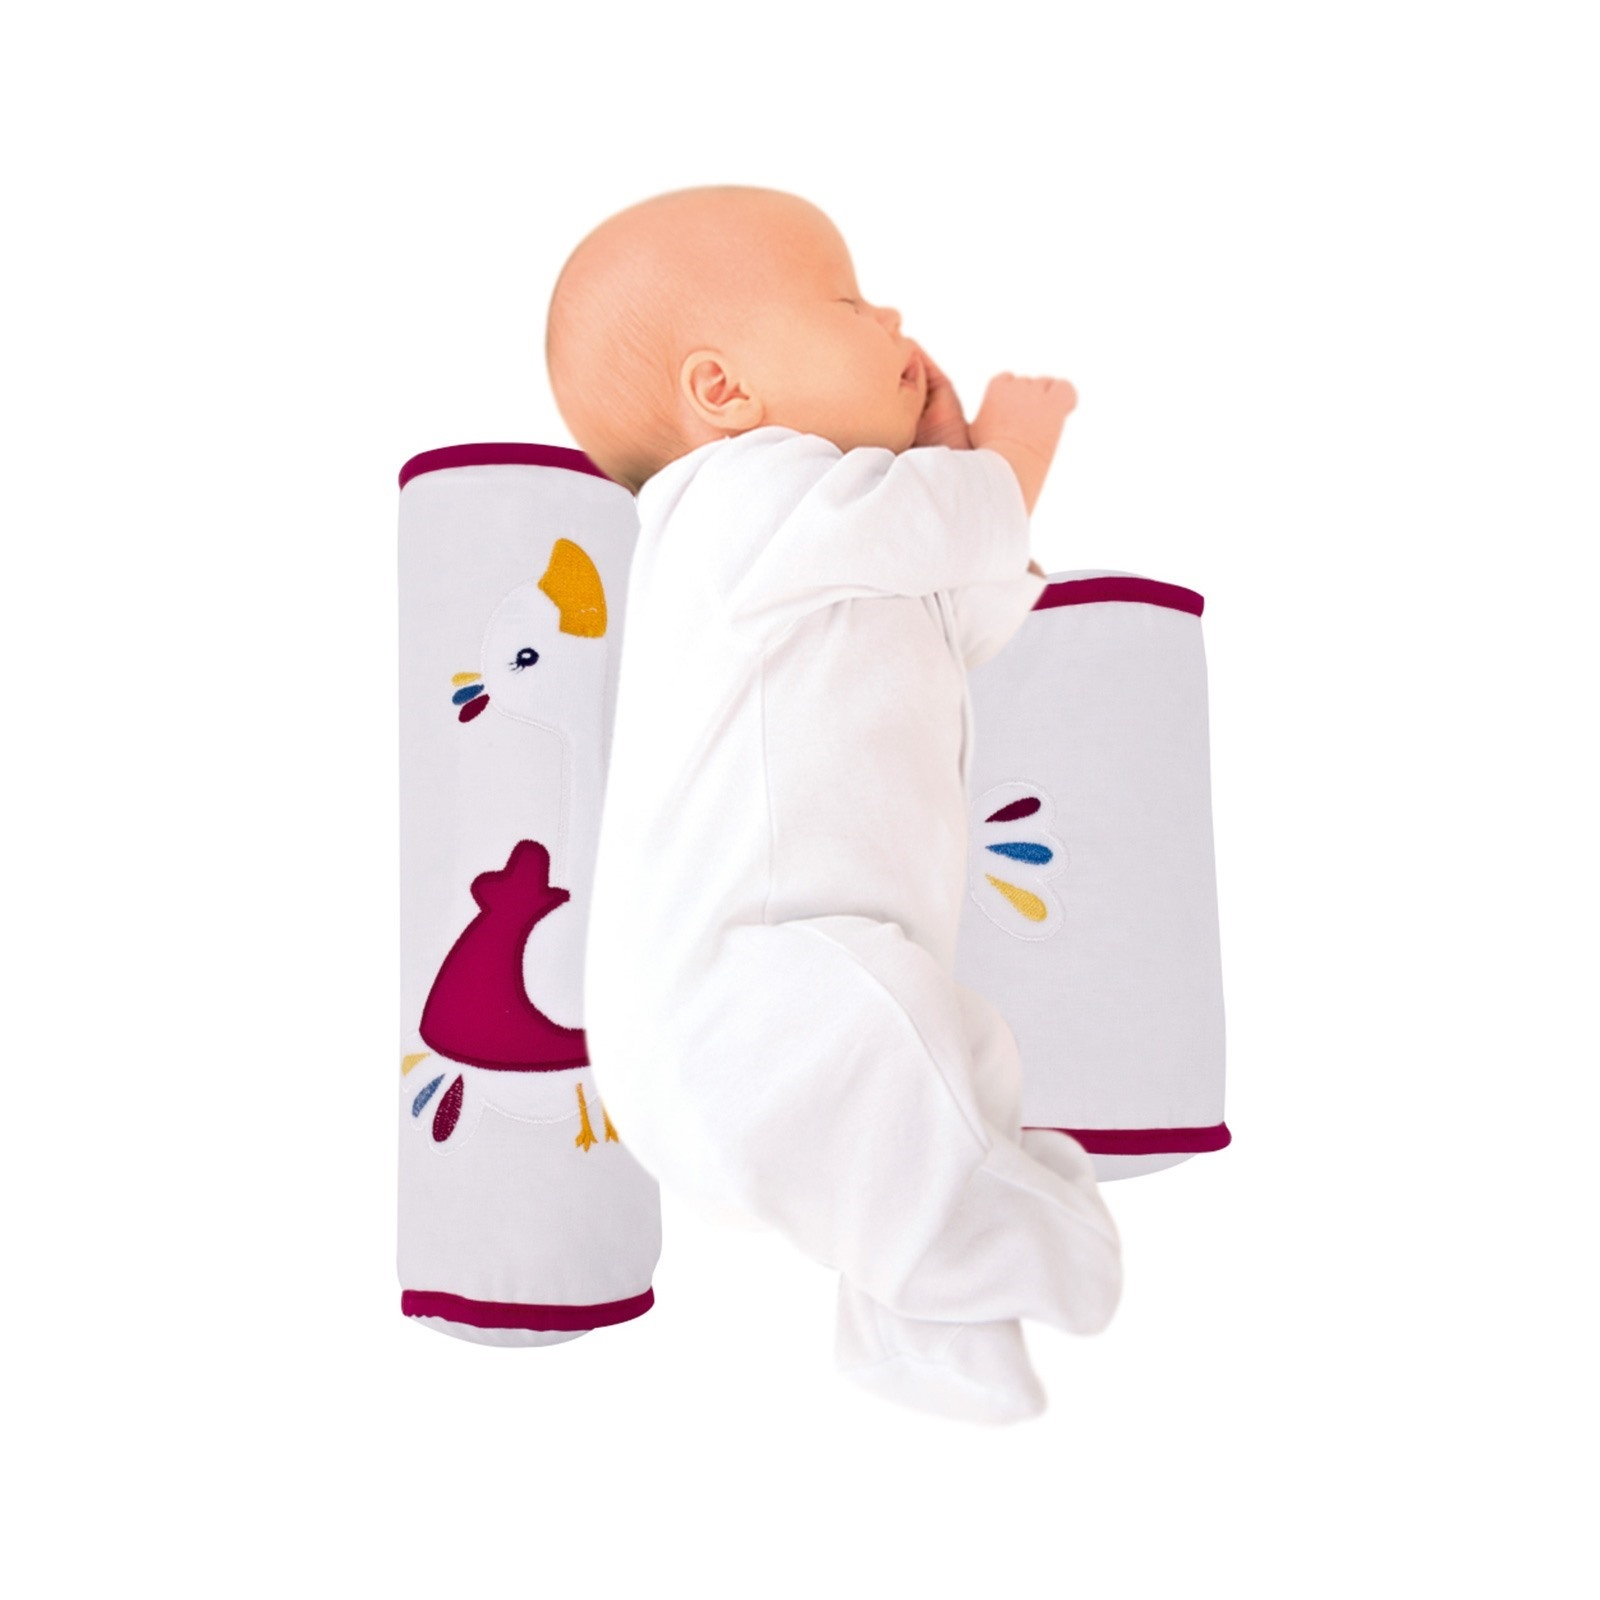 Ebebek Sevi Bebe Embroidered Baby Happy Sleeping Pillow